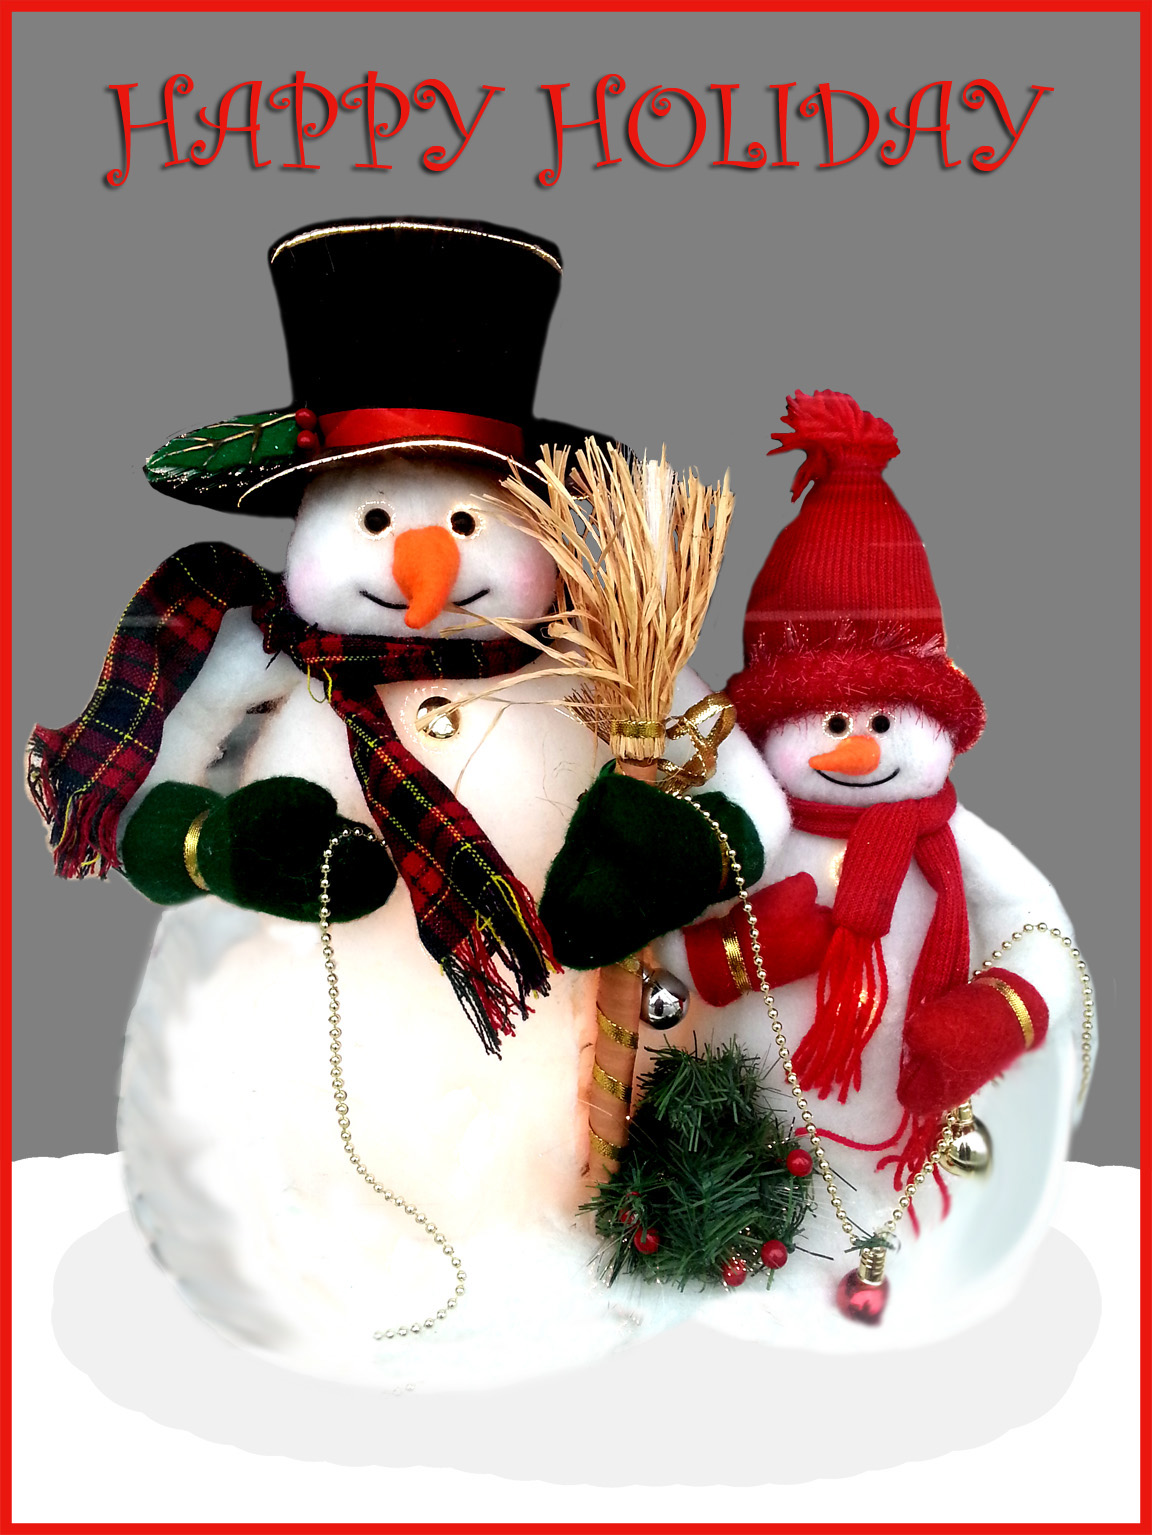 Two snowmen with Christmas wish